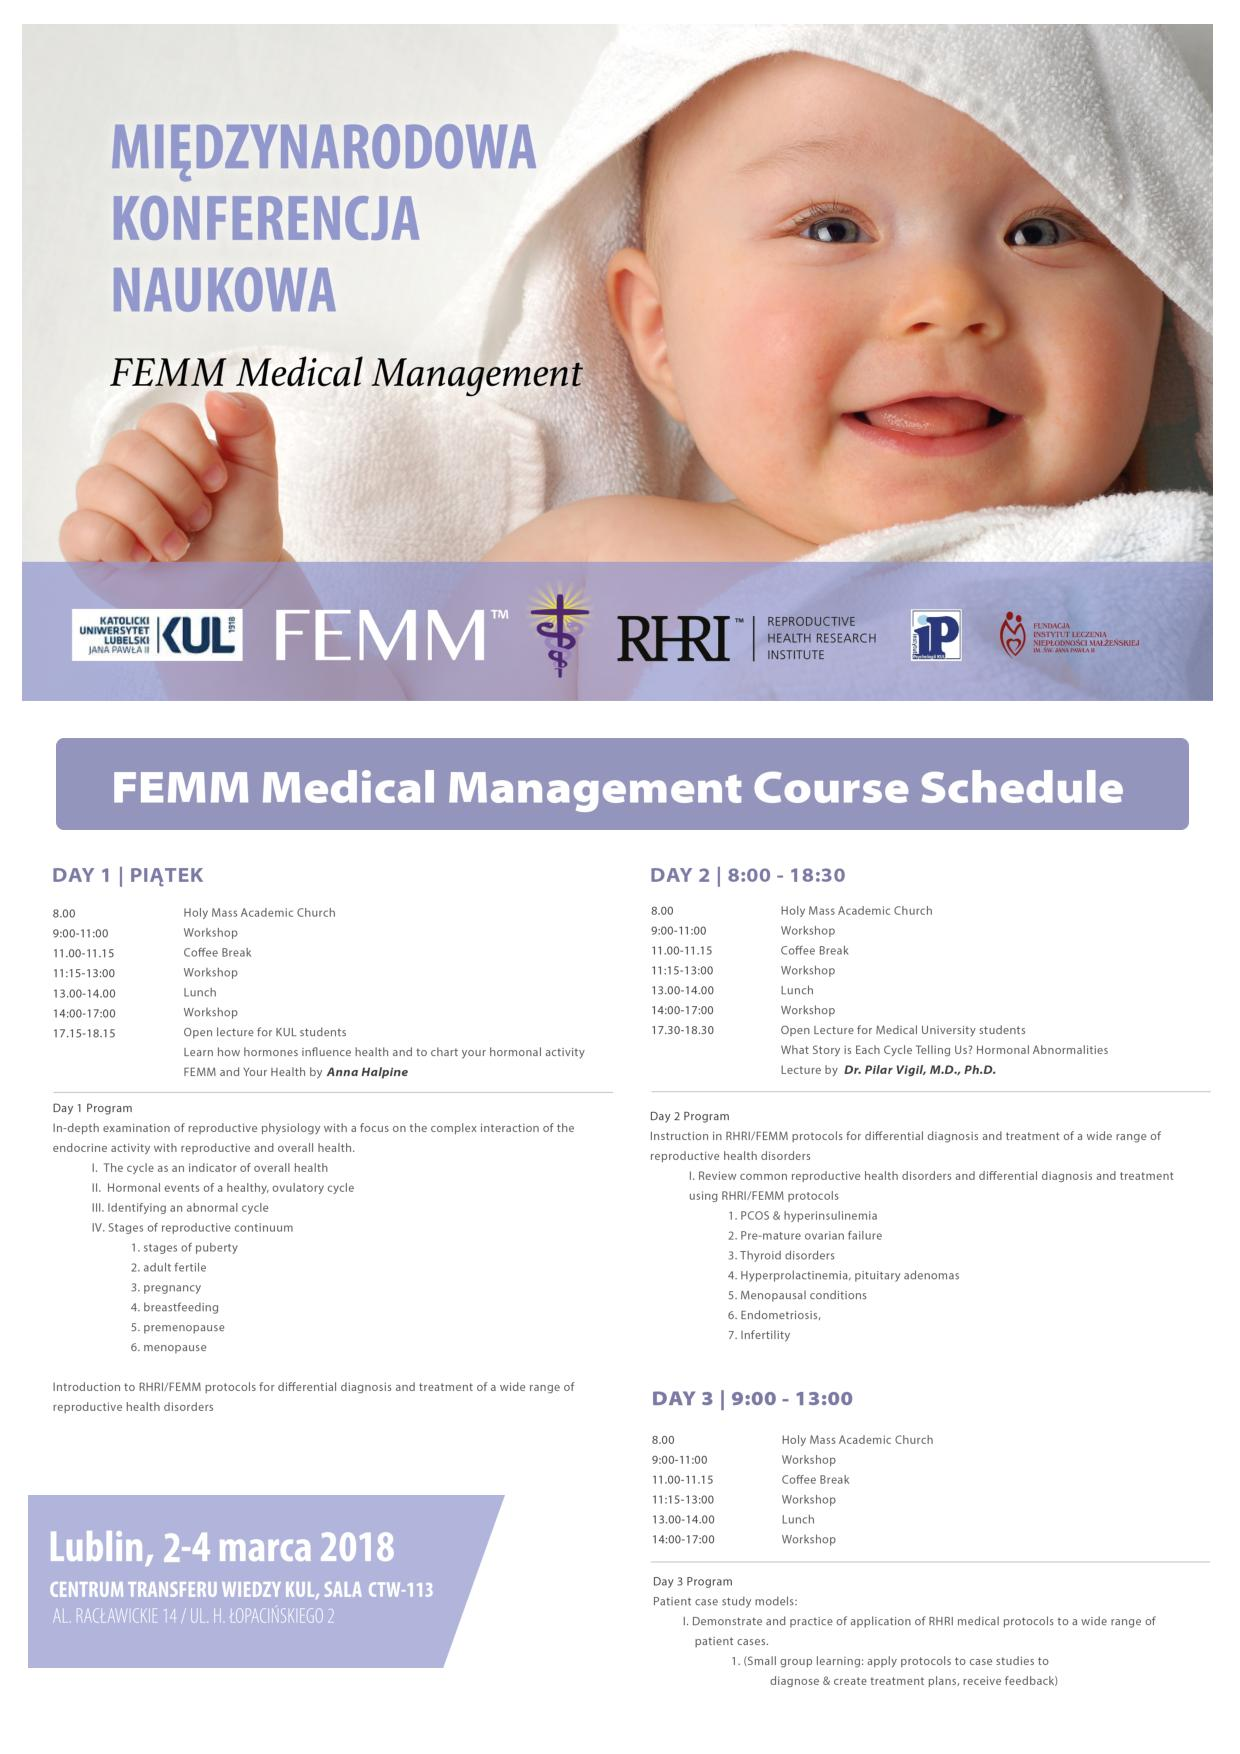 FEMM Medical Management